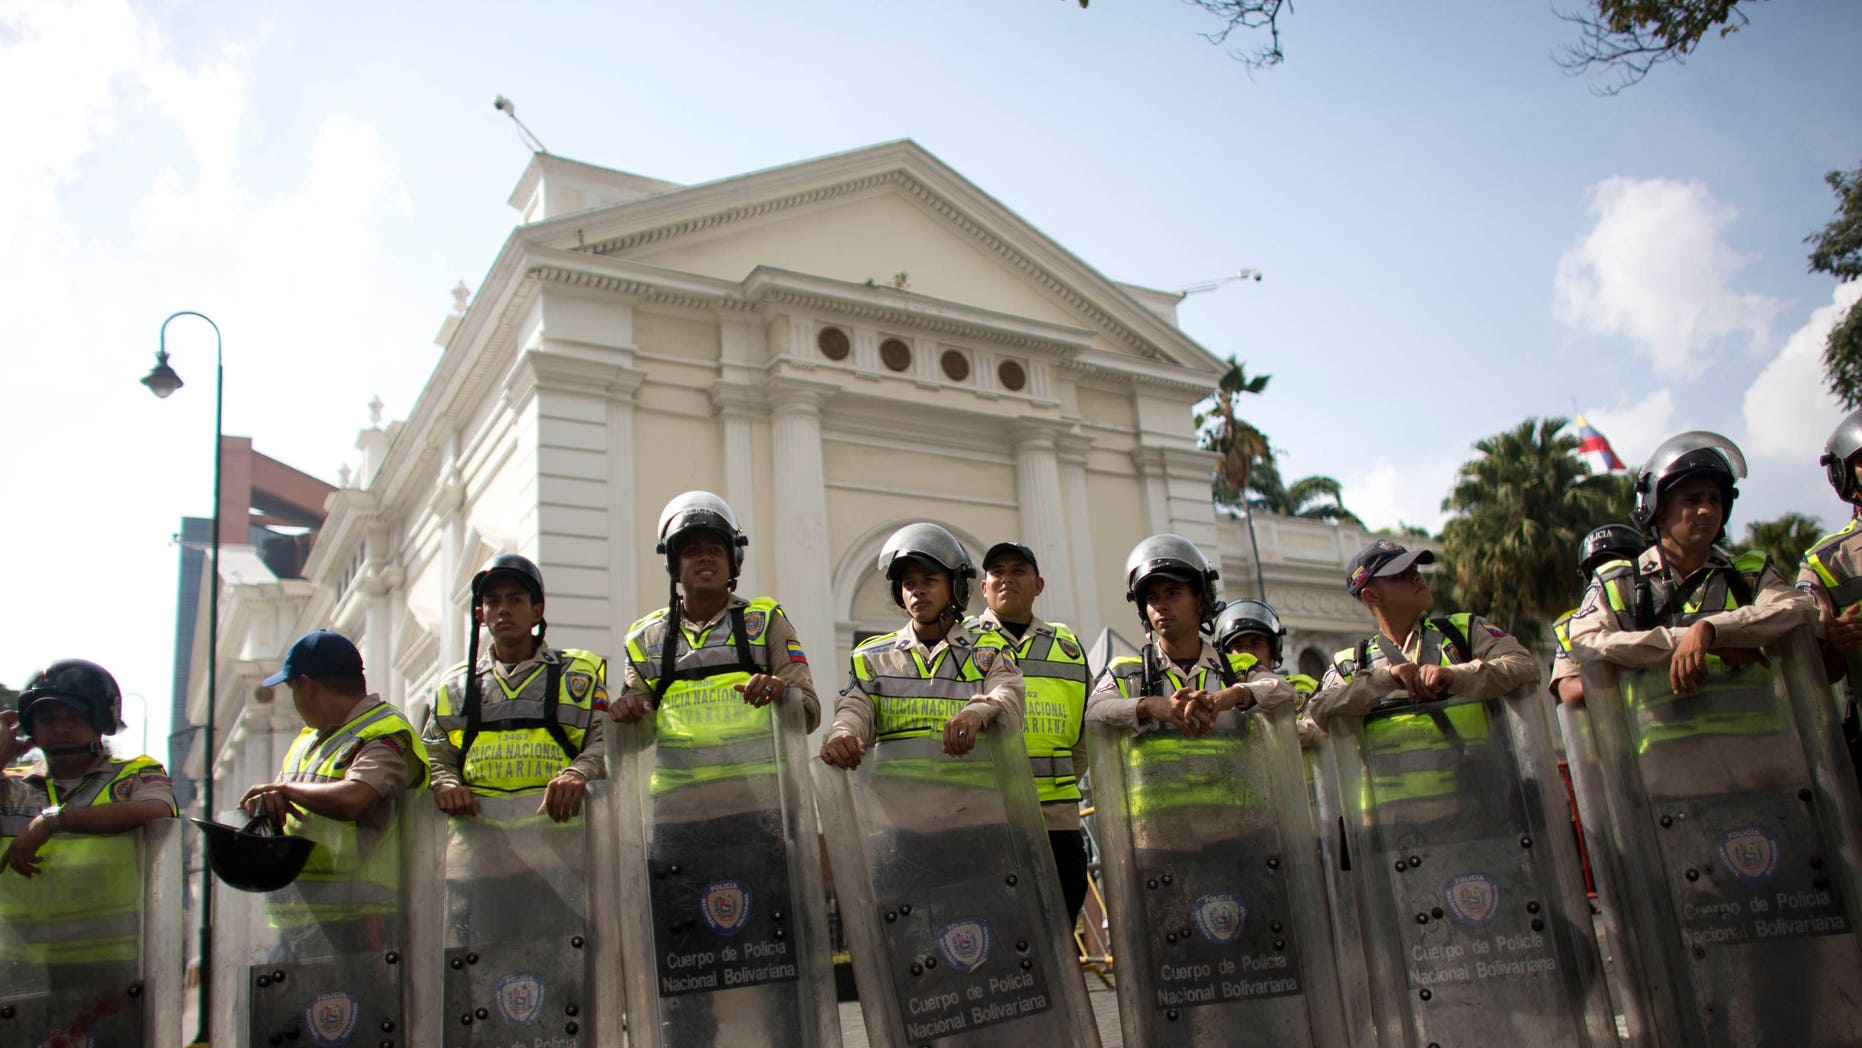 National Bolivarian Police officers outside the National Assembly building in Caracas, Venezuela, Tuesday, March. 1, 2016.